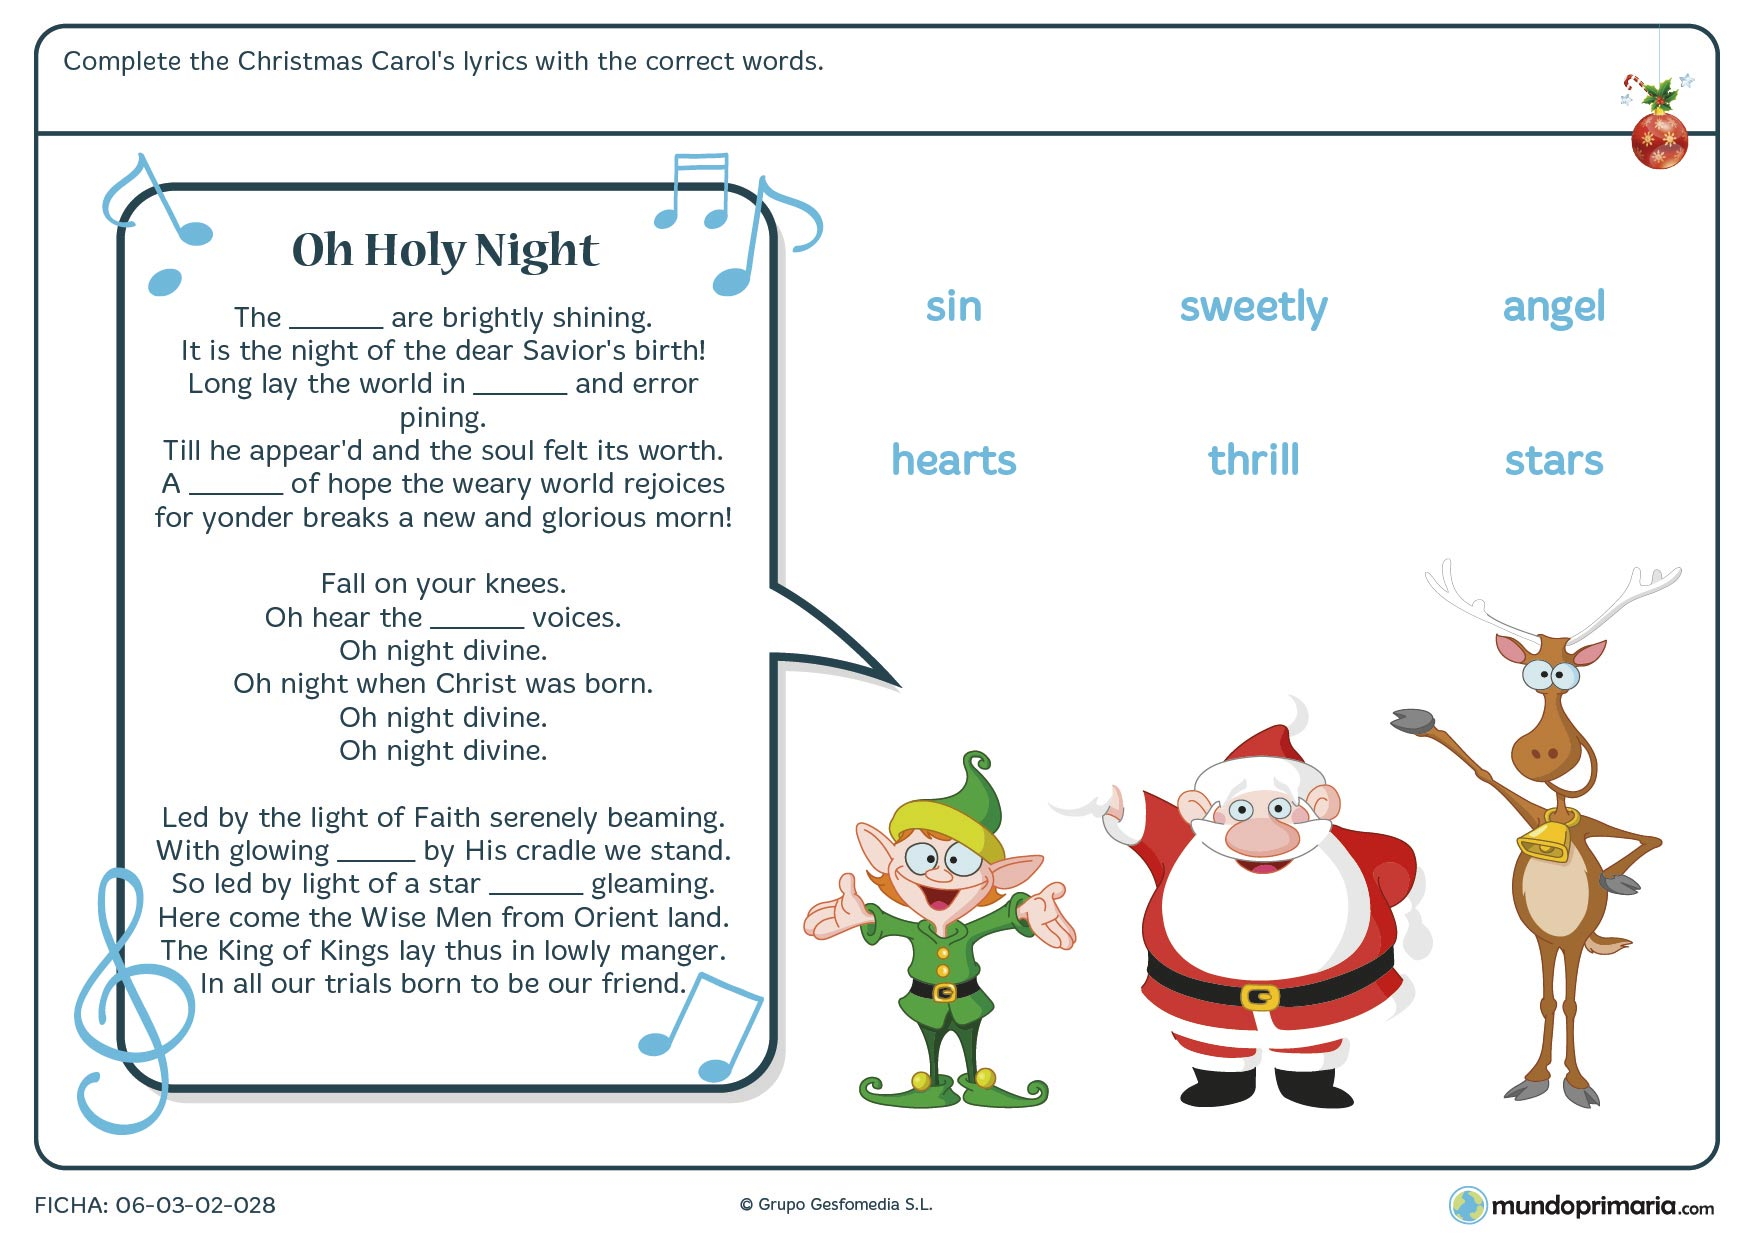 "Ficha navideña de vocabulario en inglés apoyada en la canción ""Oh Holy Night"""